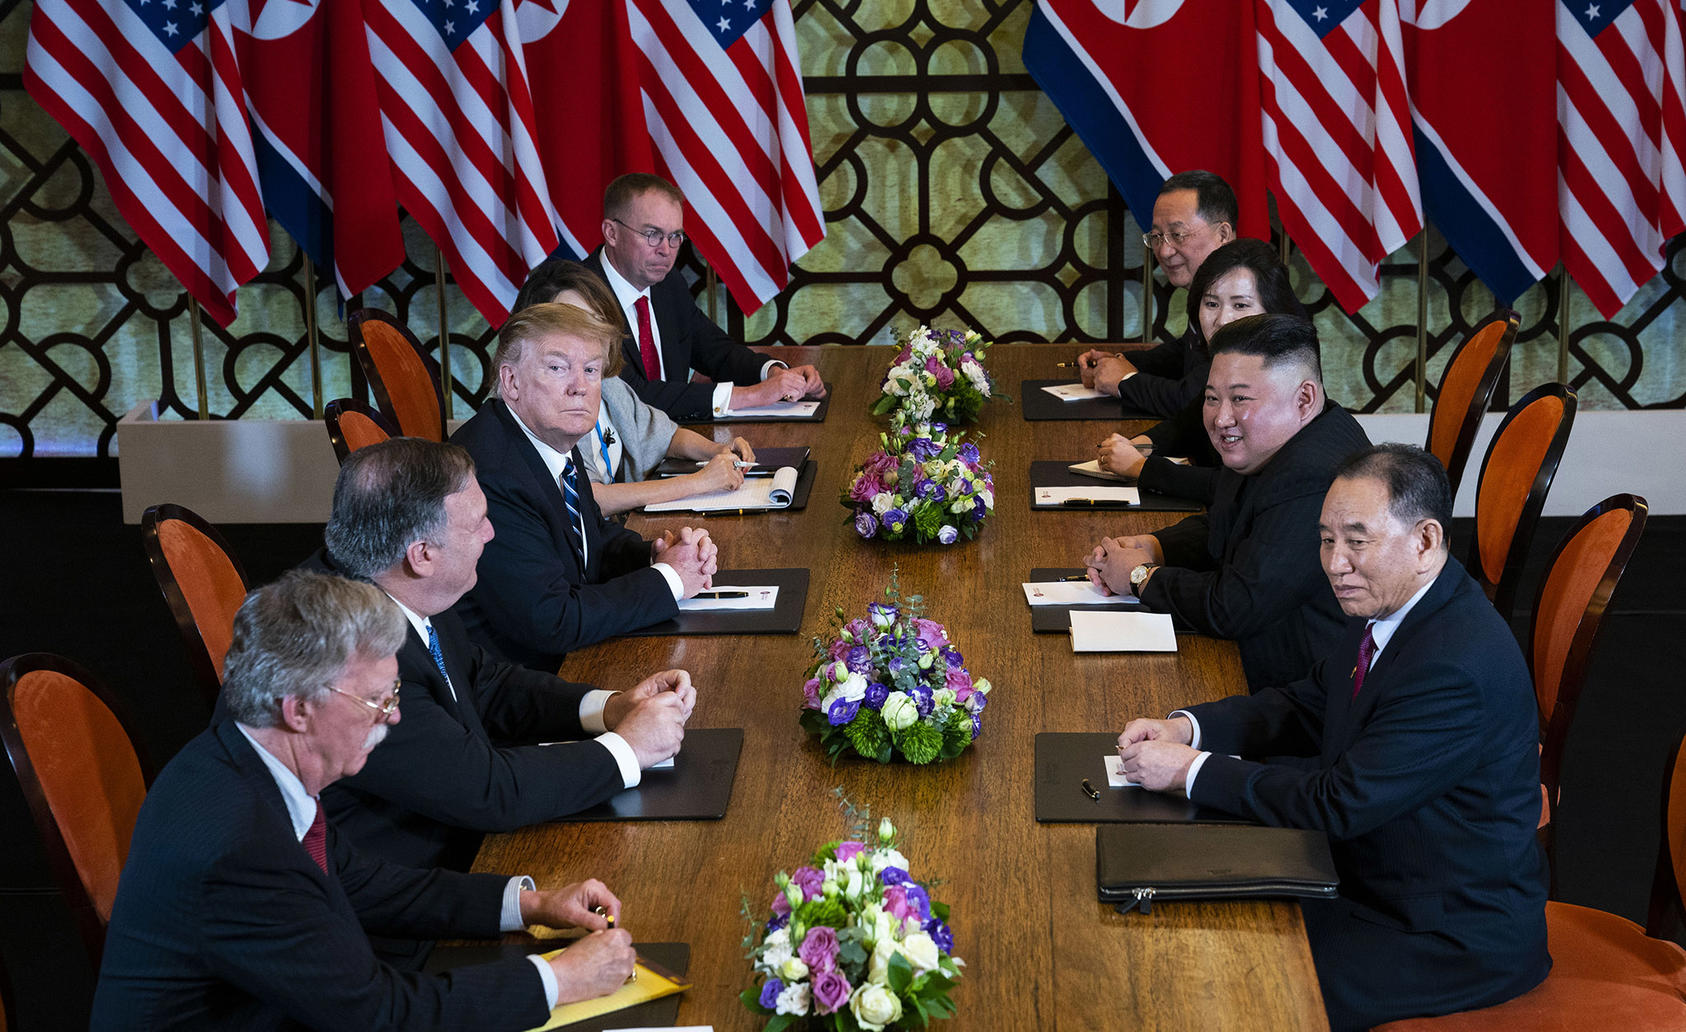 U.S. President Donald Trump sits across from Kim Jong Un, the leader of North Korea, during a February 2019 meeting in Vietnam. (Photo by Doug Mills/New York Times)